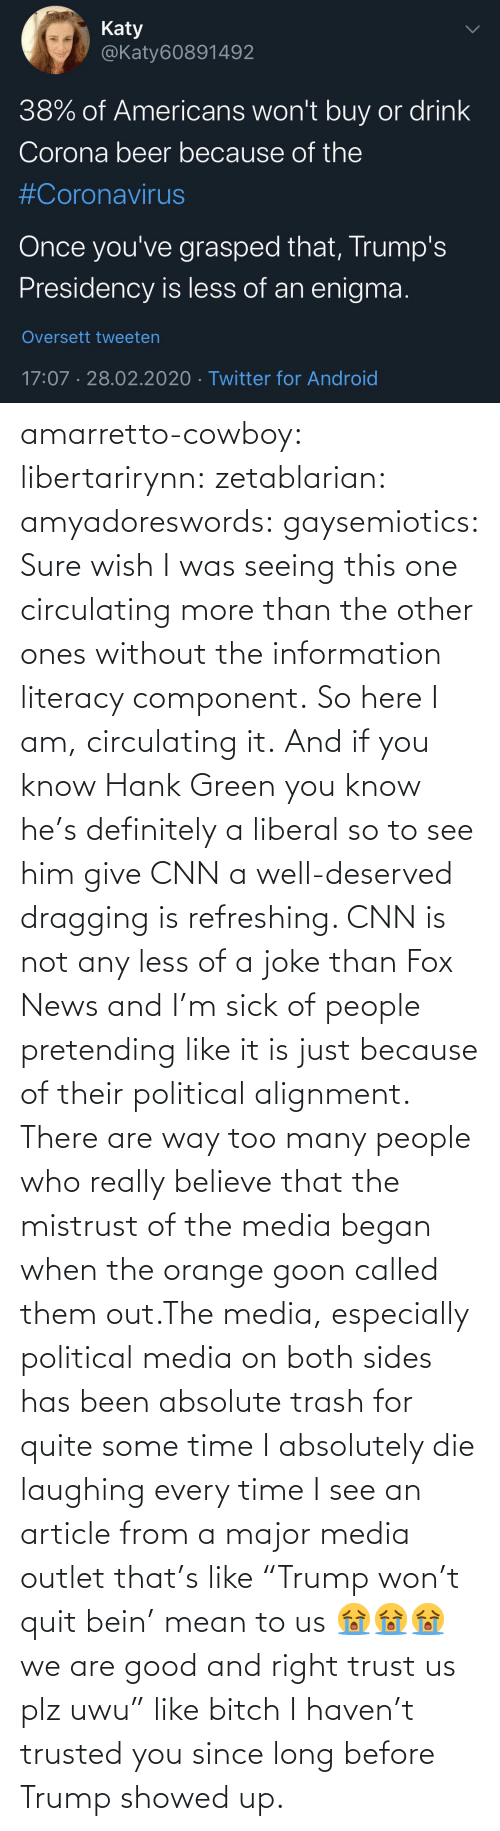 "Trash: amarretto-cowboy:  libertarirynn:  zetablarian:  amyadoreswords:   gaysemiotics:       Sure wish I was seeing this one circulating more than the other ones without the information literacy component. So here I am, circulating it.    And if you know Hank Green you know he's definitely a liberal so to see him give CNN a well-deserved dragging is refreshing. CNN is not any less of a joke than Fox News and I'm sick of people pretending like it is just because of their political alignment.   There are way too many people who really believe that the mistrust of the media began when the orange goon called them out.The media, especially political media on both sides has been absolute trash for quite some time   I absolutely die laughing every time I see an article from a major media outlet that's like ""Trump won't quit bein' mean to us 😭😭😭 we are good and right trust us plz uwu"" like bitch I haven't trusted you since long before Trump showed up."